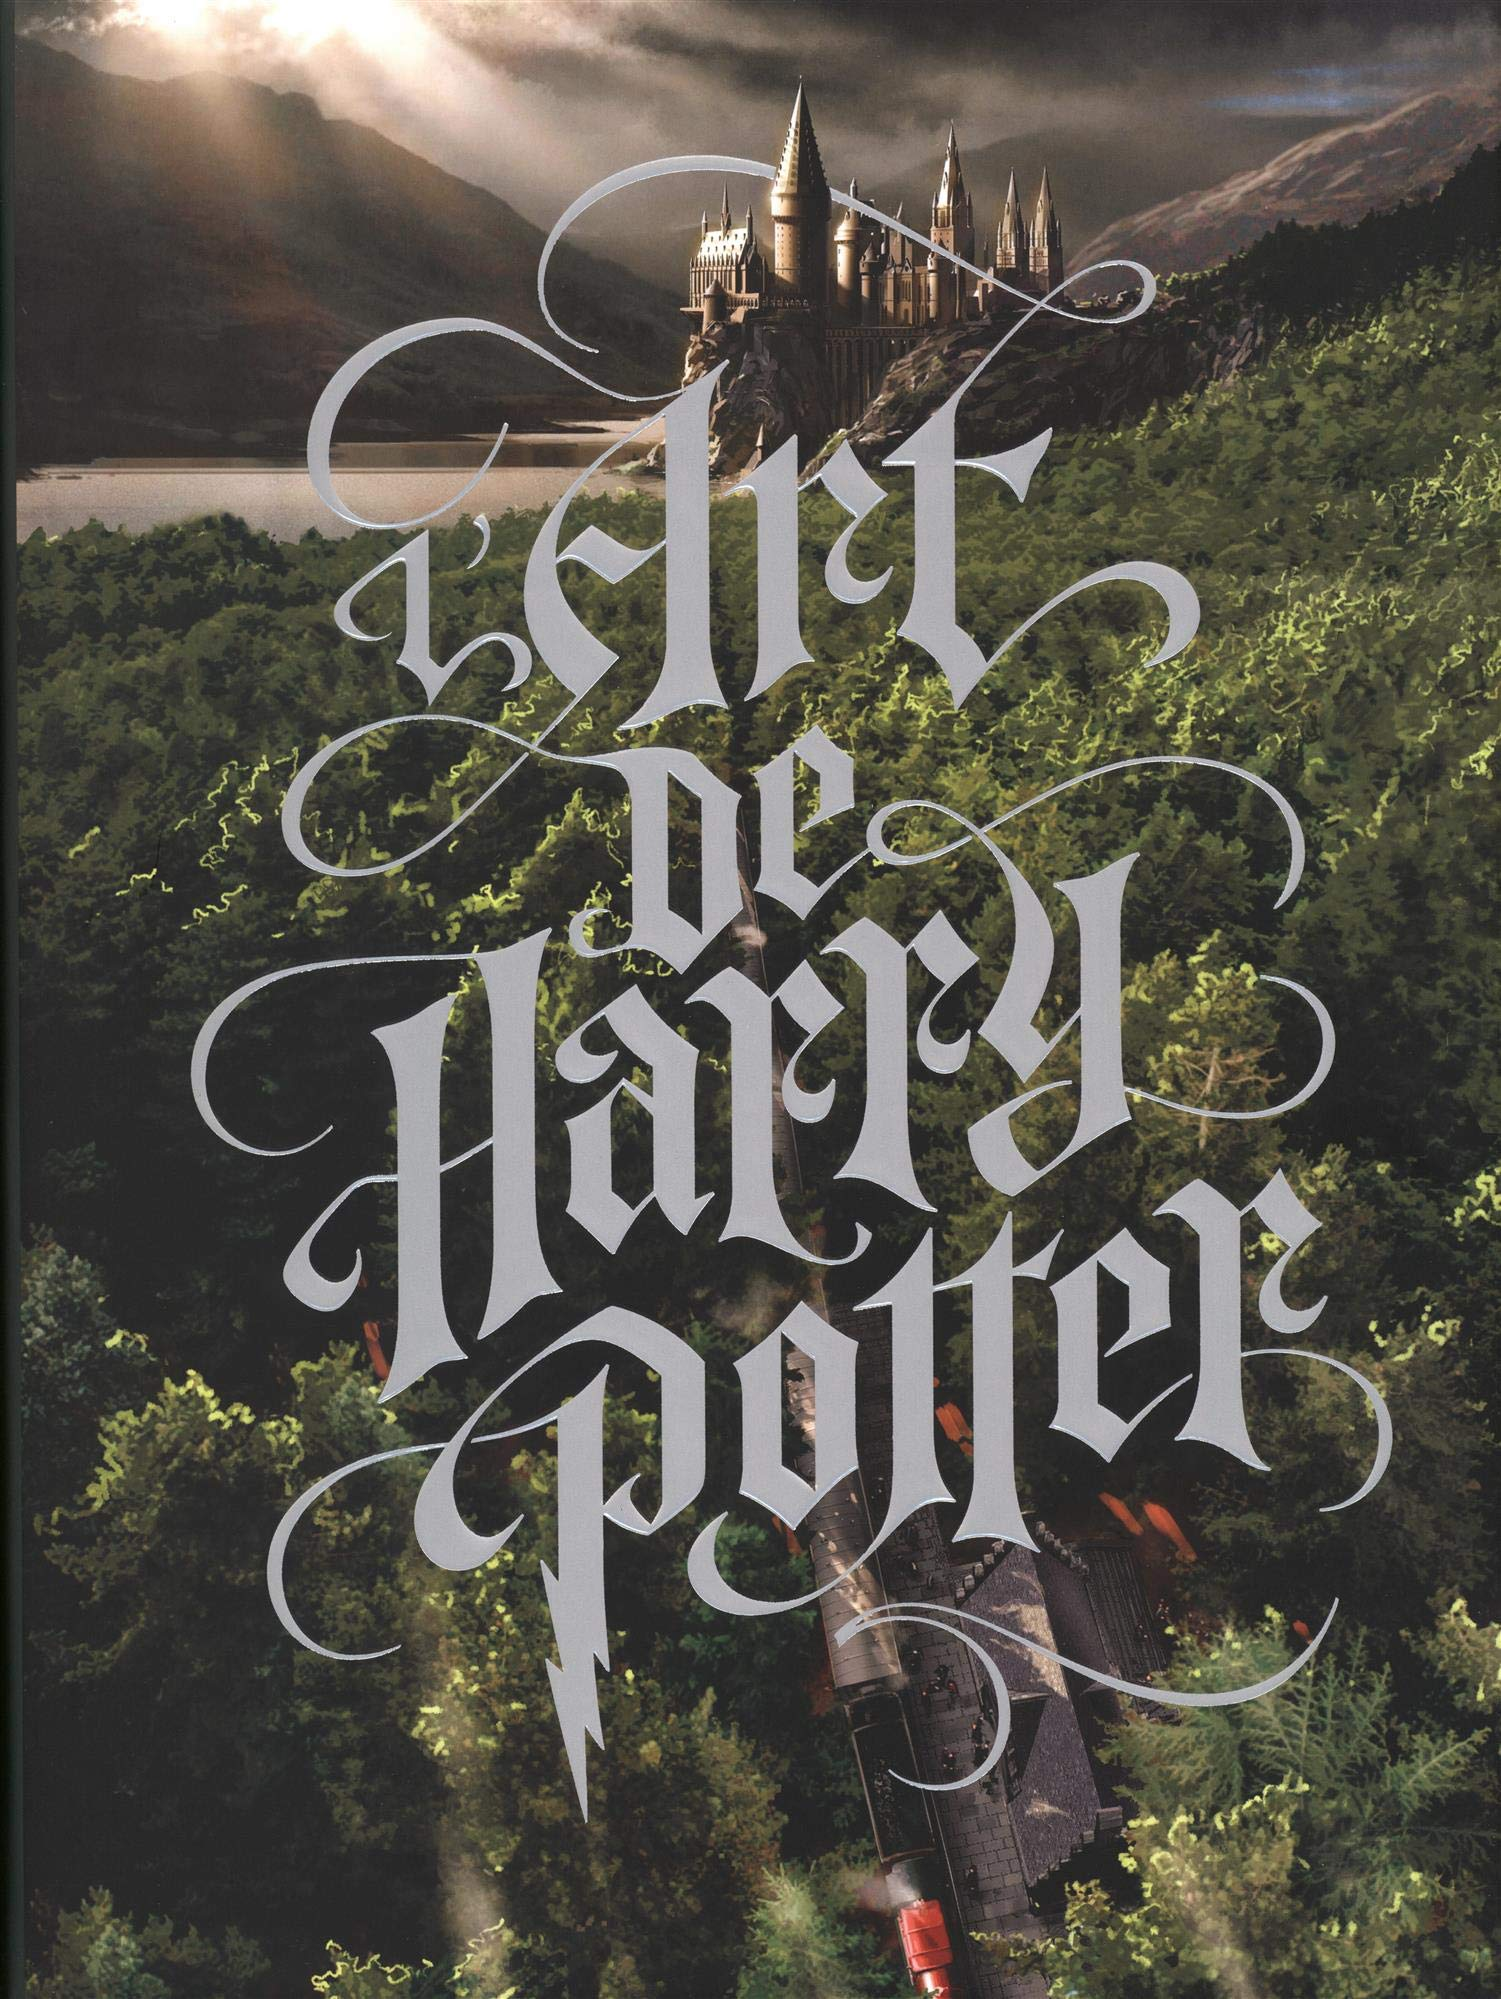 Harry Potter, l'art des films. L'artbook rêvé de tout Potterhead.